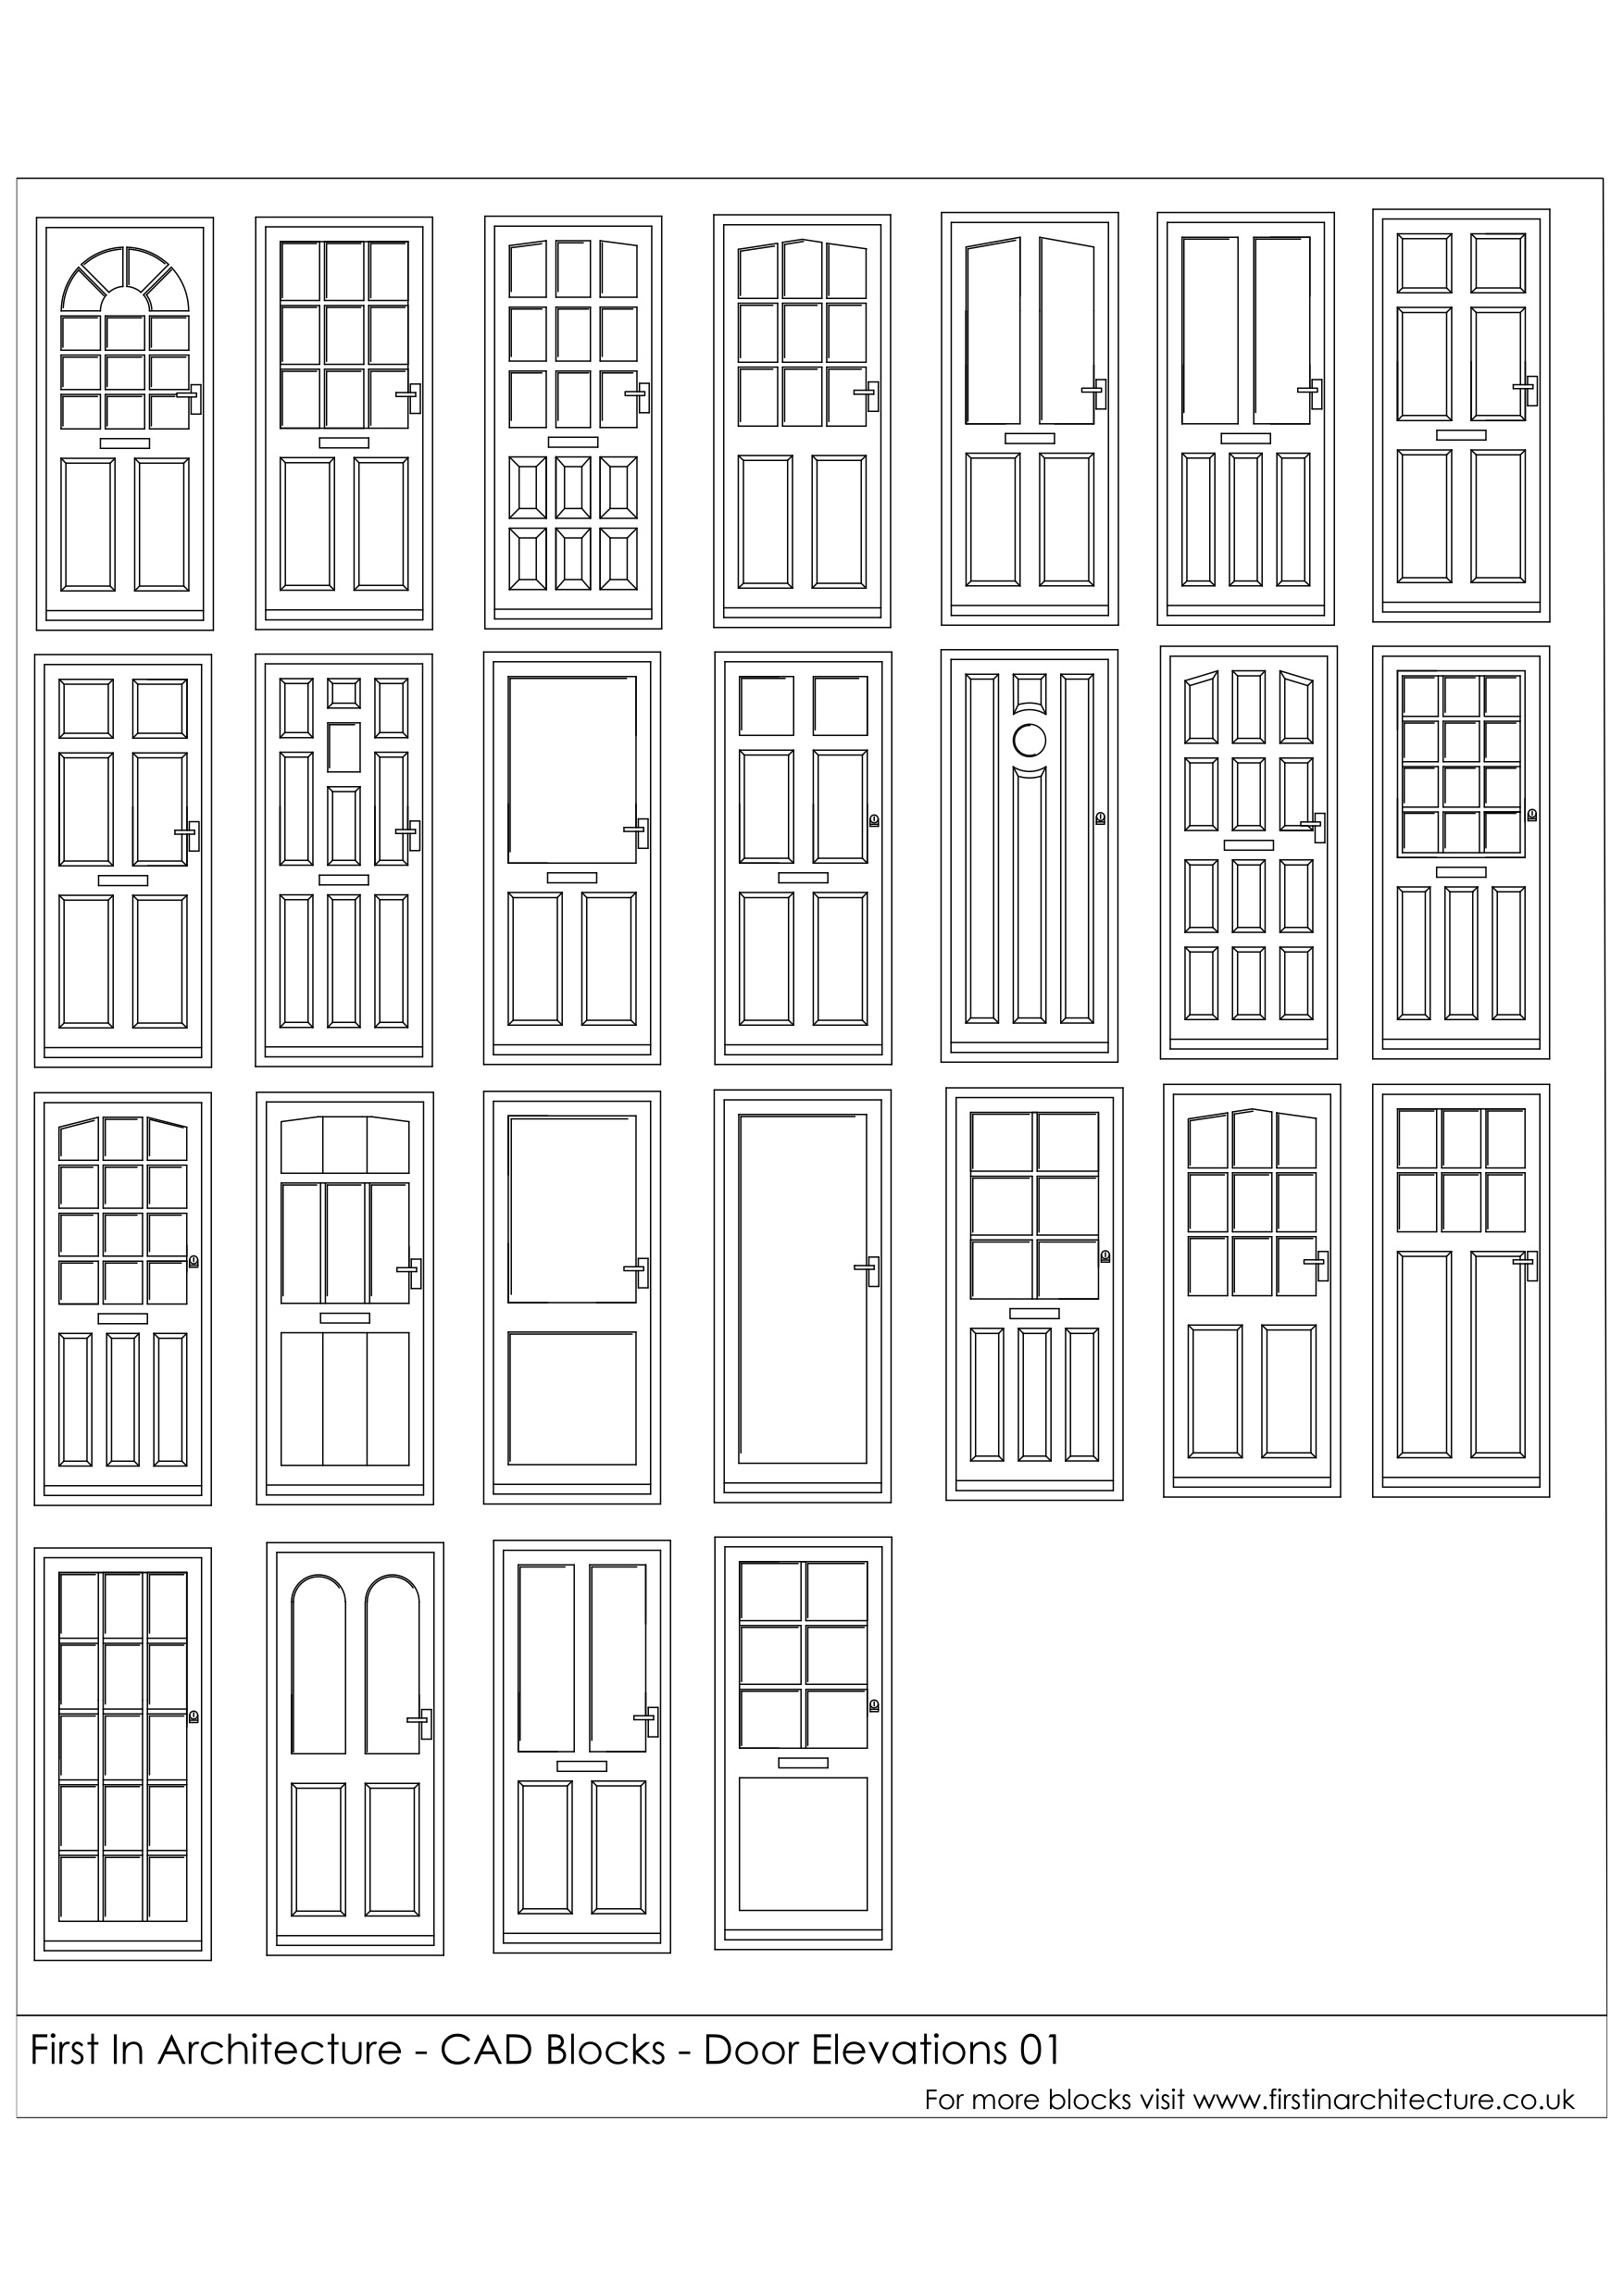 Free cad blocks door elevations first in architecture for Online architecture drawing